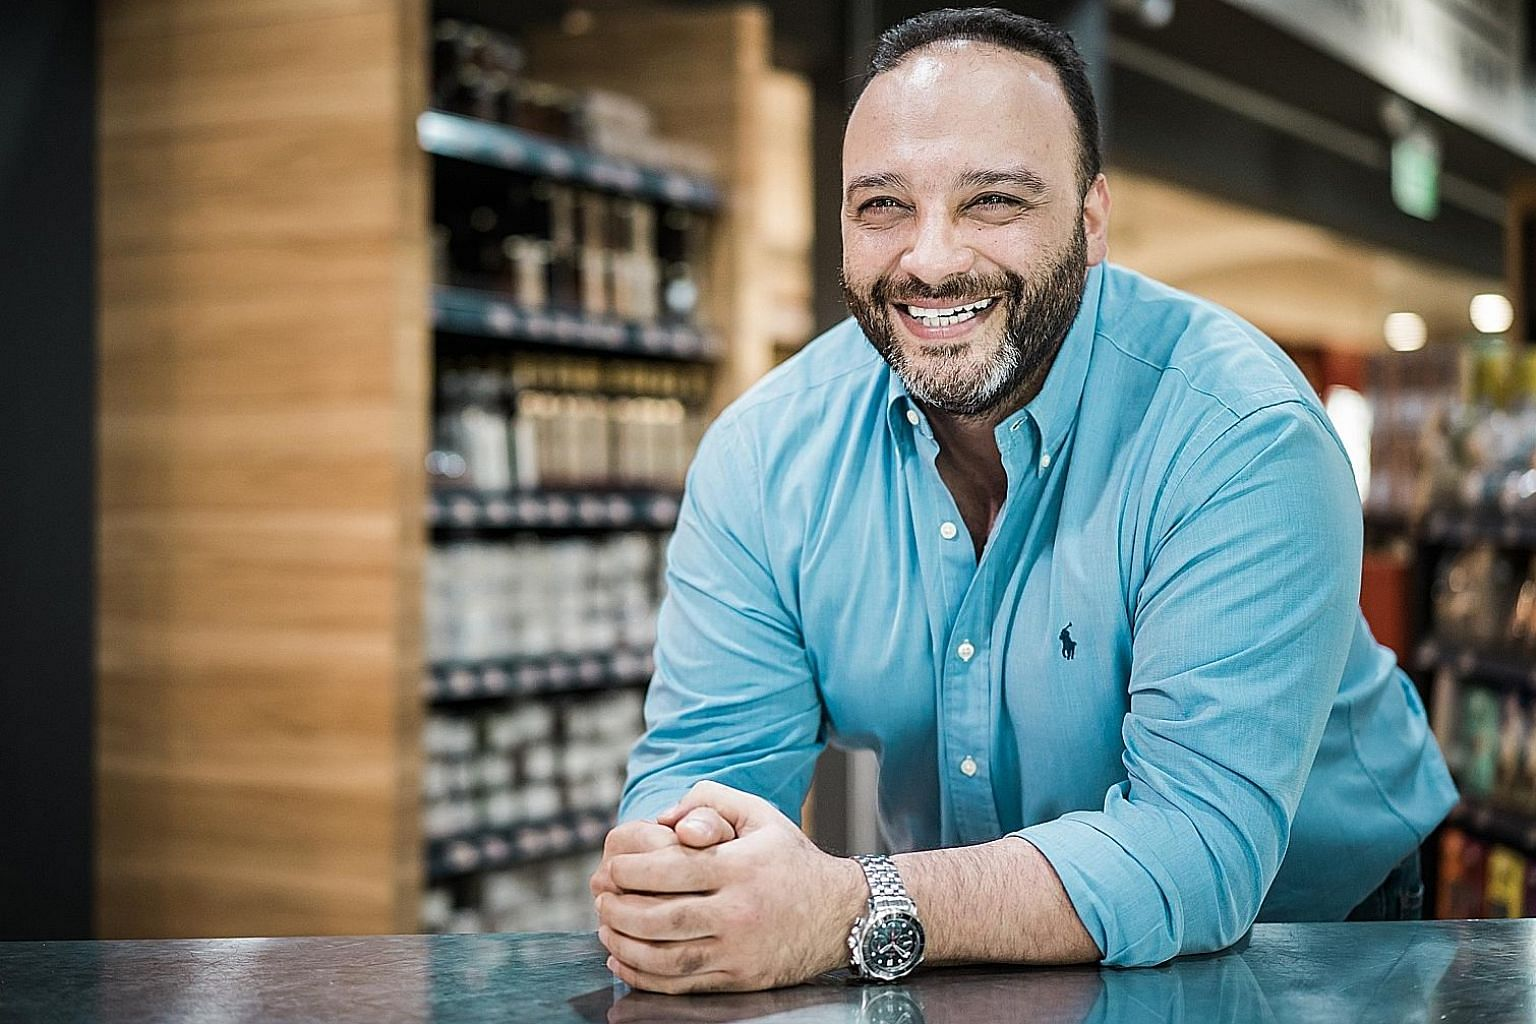 Little Farms' Fred Moujalli started the grocer's store because he felt that there was a gap in the Singapore market for fresh, high-quality and ethical produce.